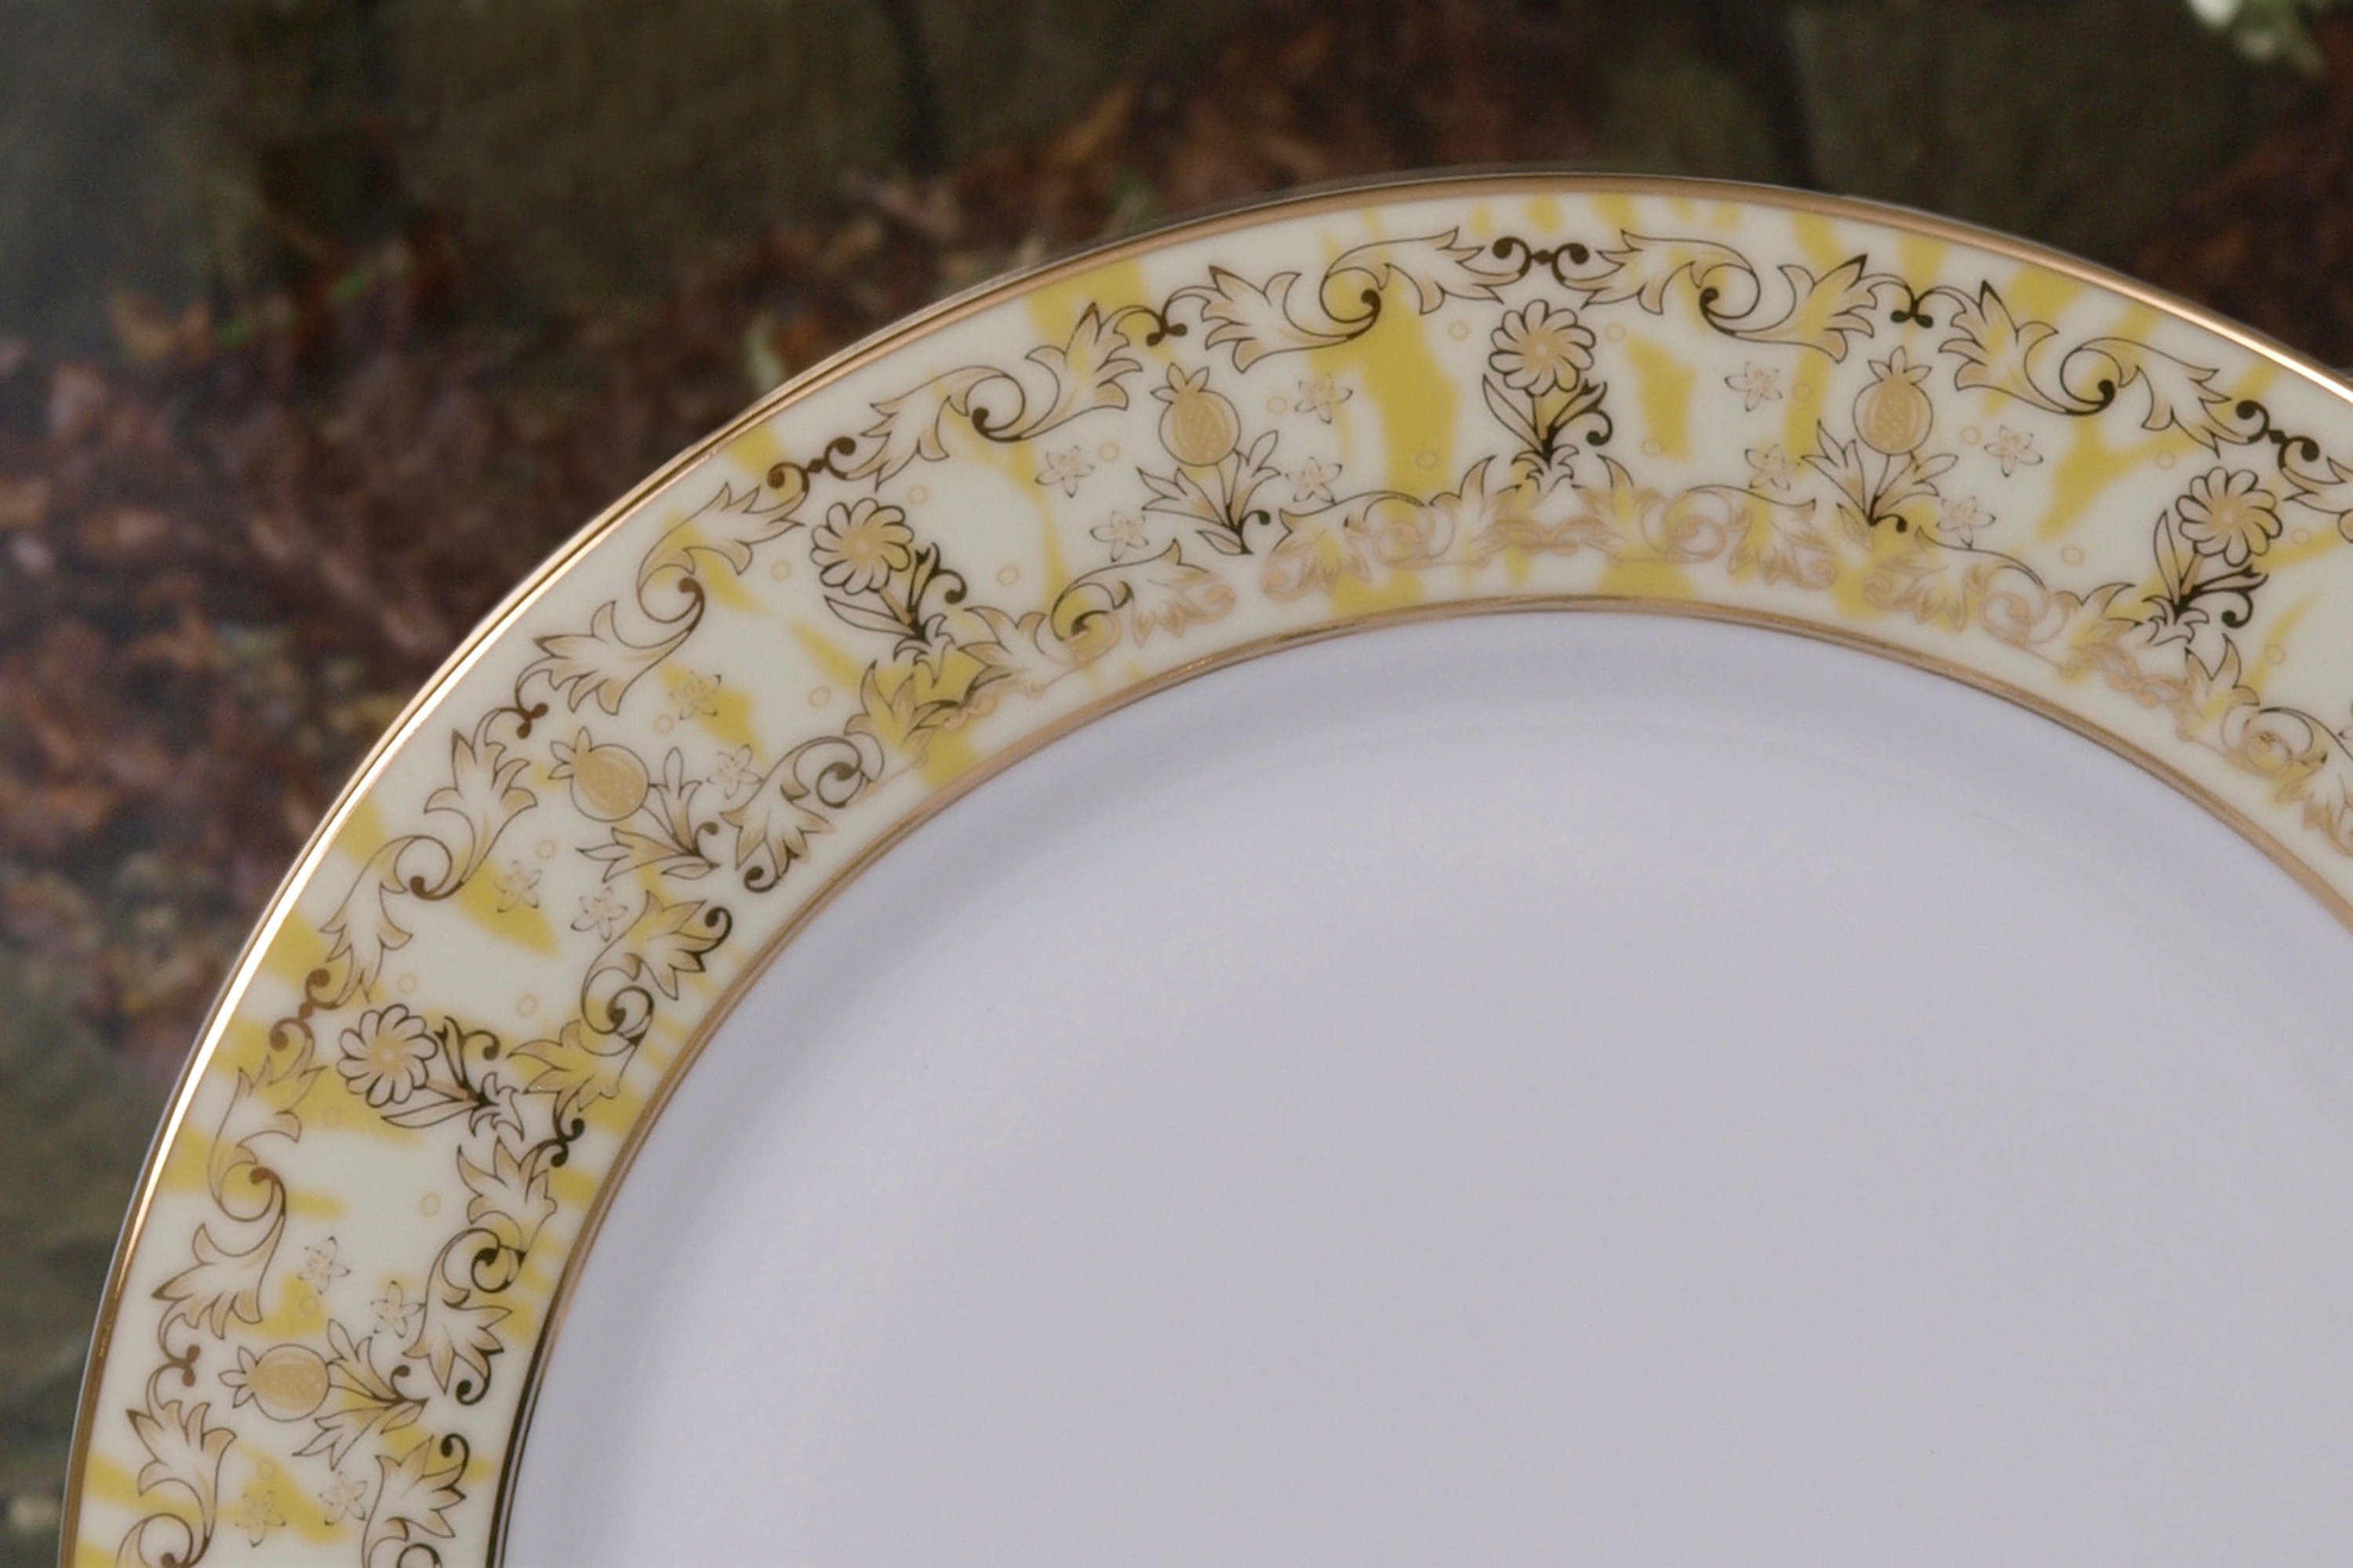 THE MARIGOLD 28 PIECE DINNER SERVICE